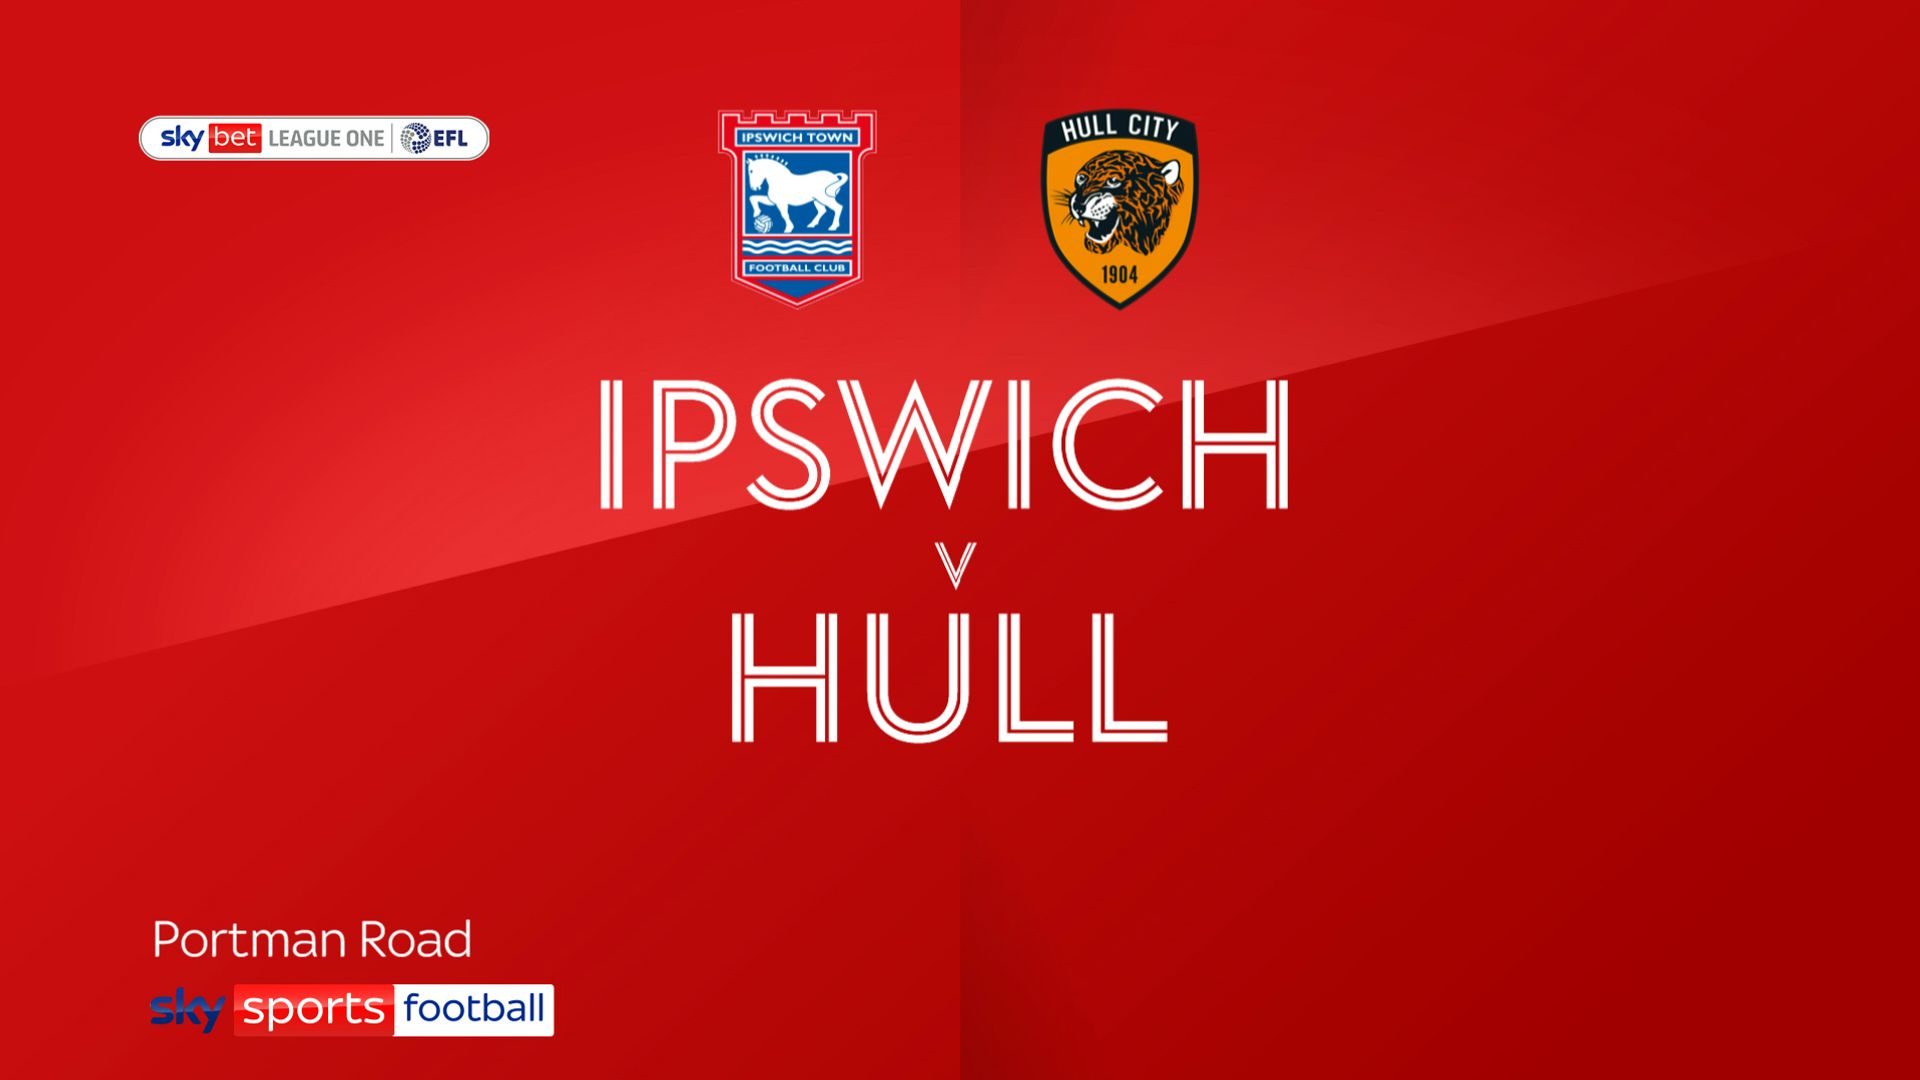 Hull stroll to win at Ipswich